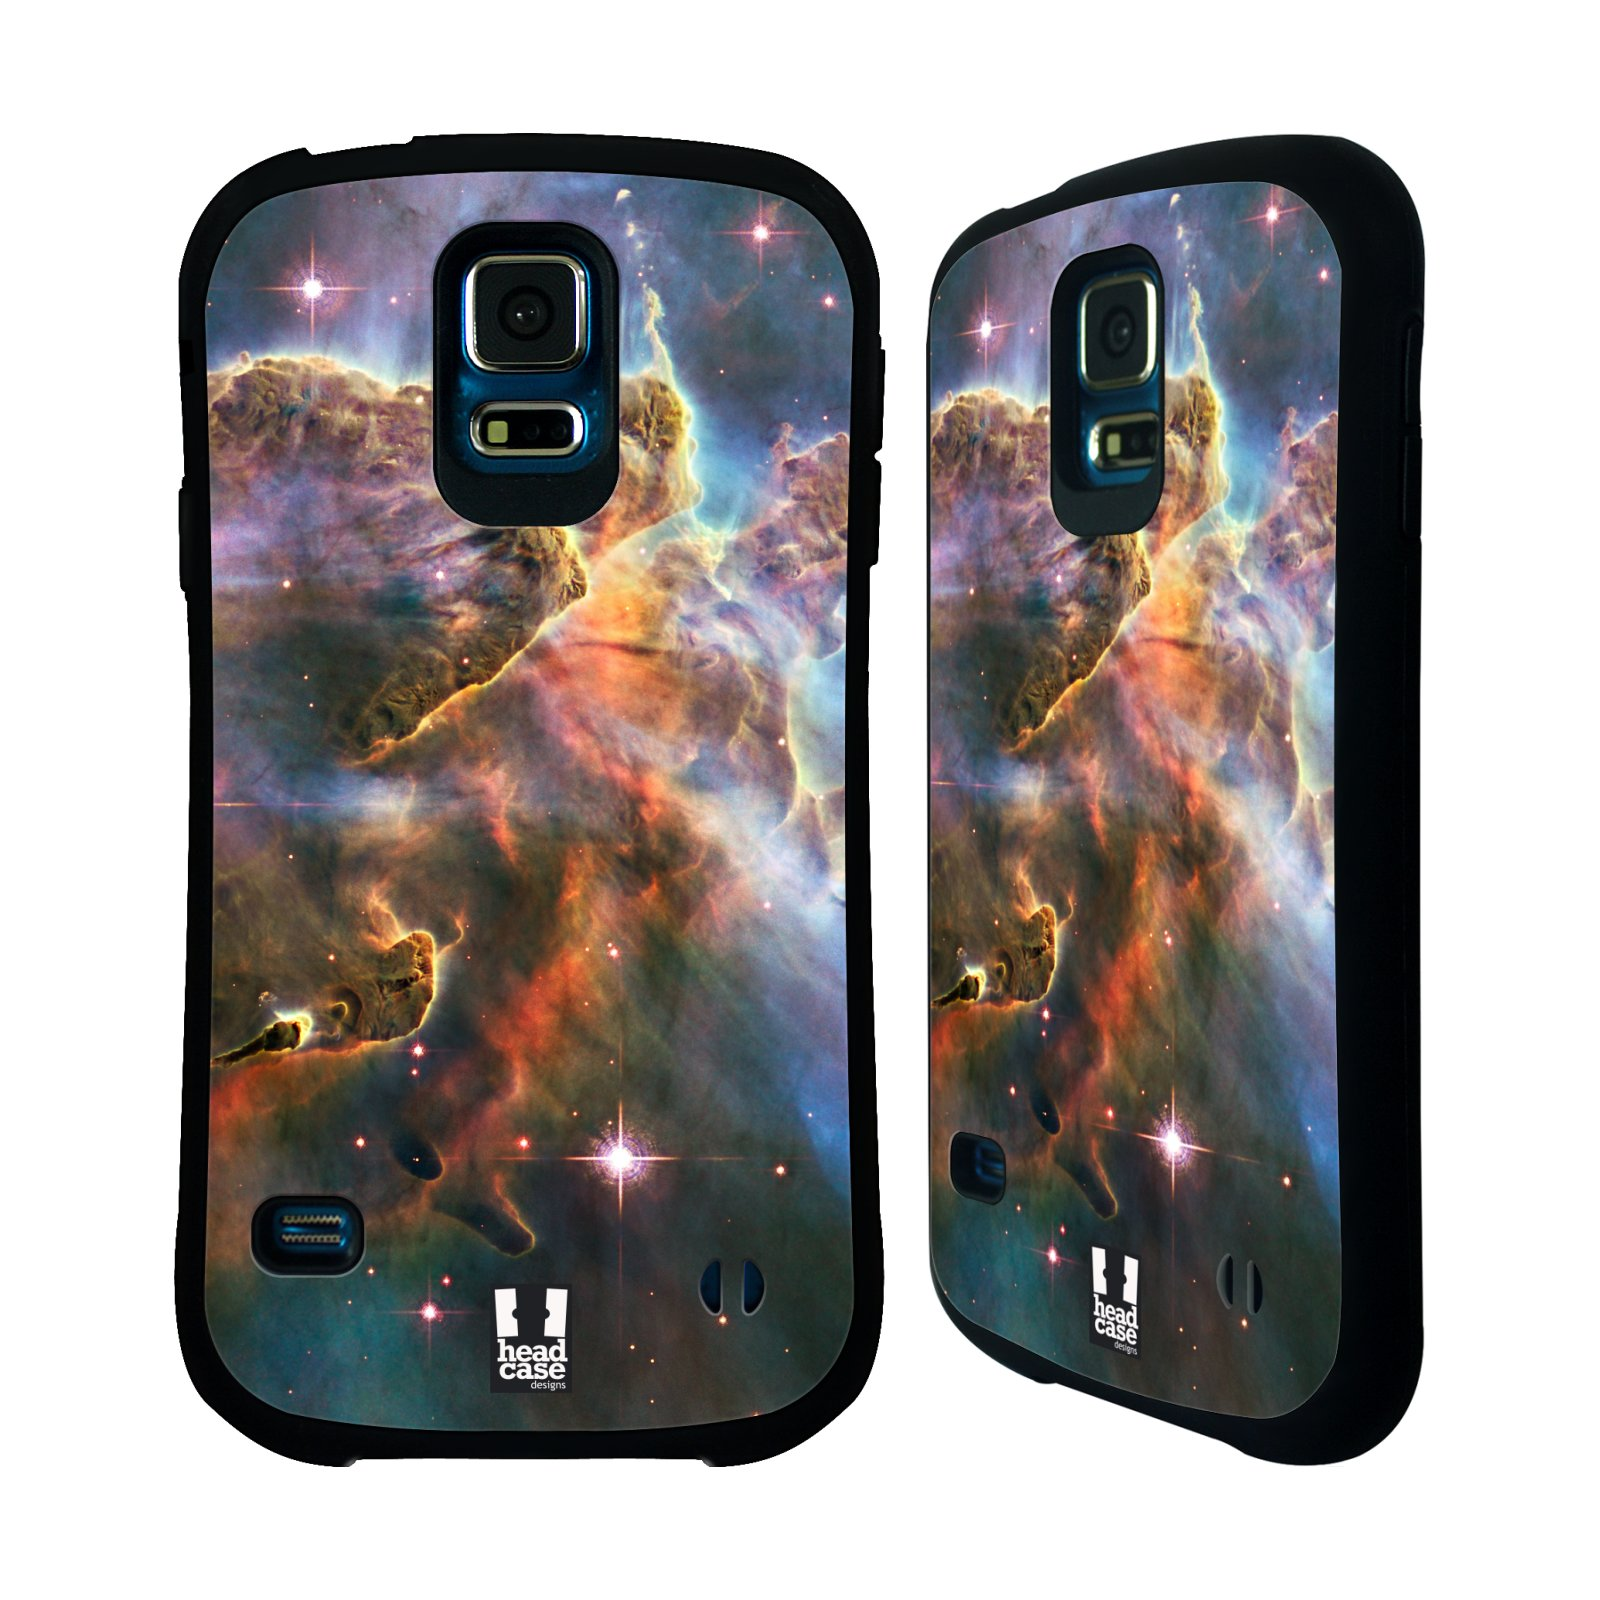 Head case designs outer space hybrid tpu back case for for Outer space designs norwich